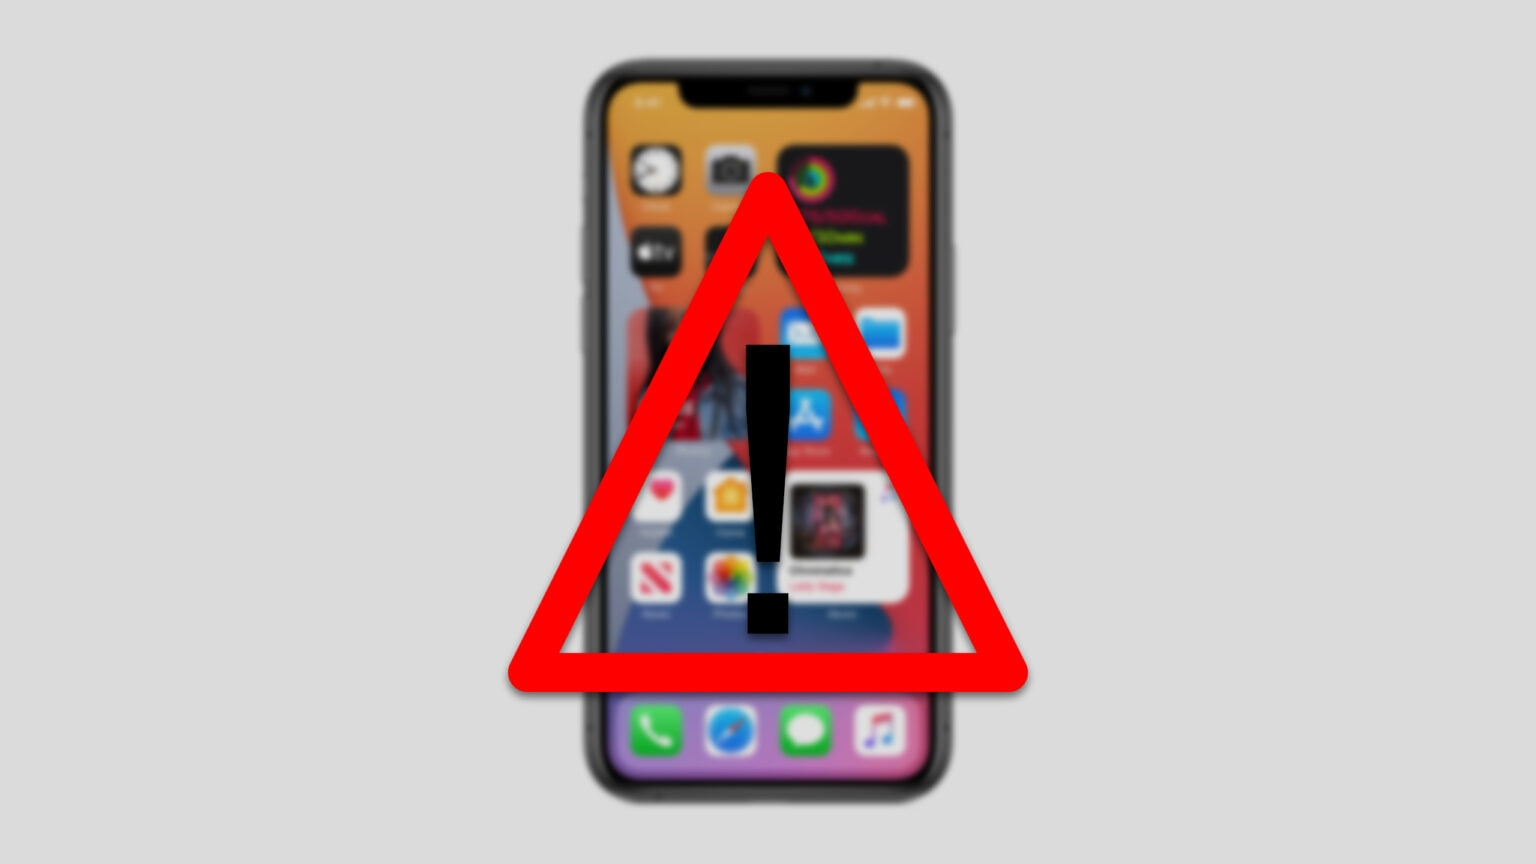 Apple stops signing iOS 14.7.1